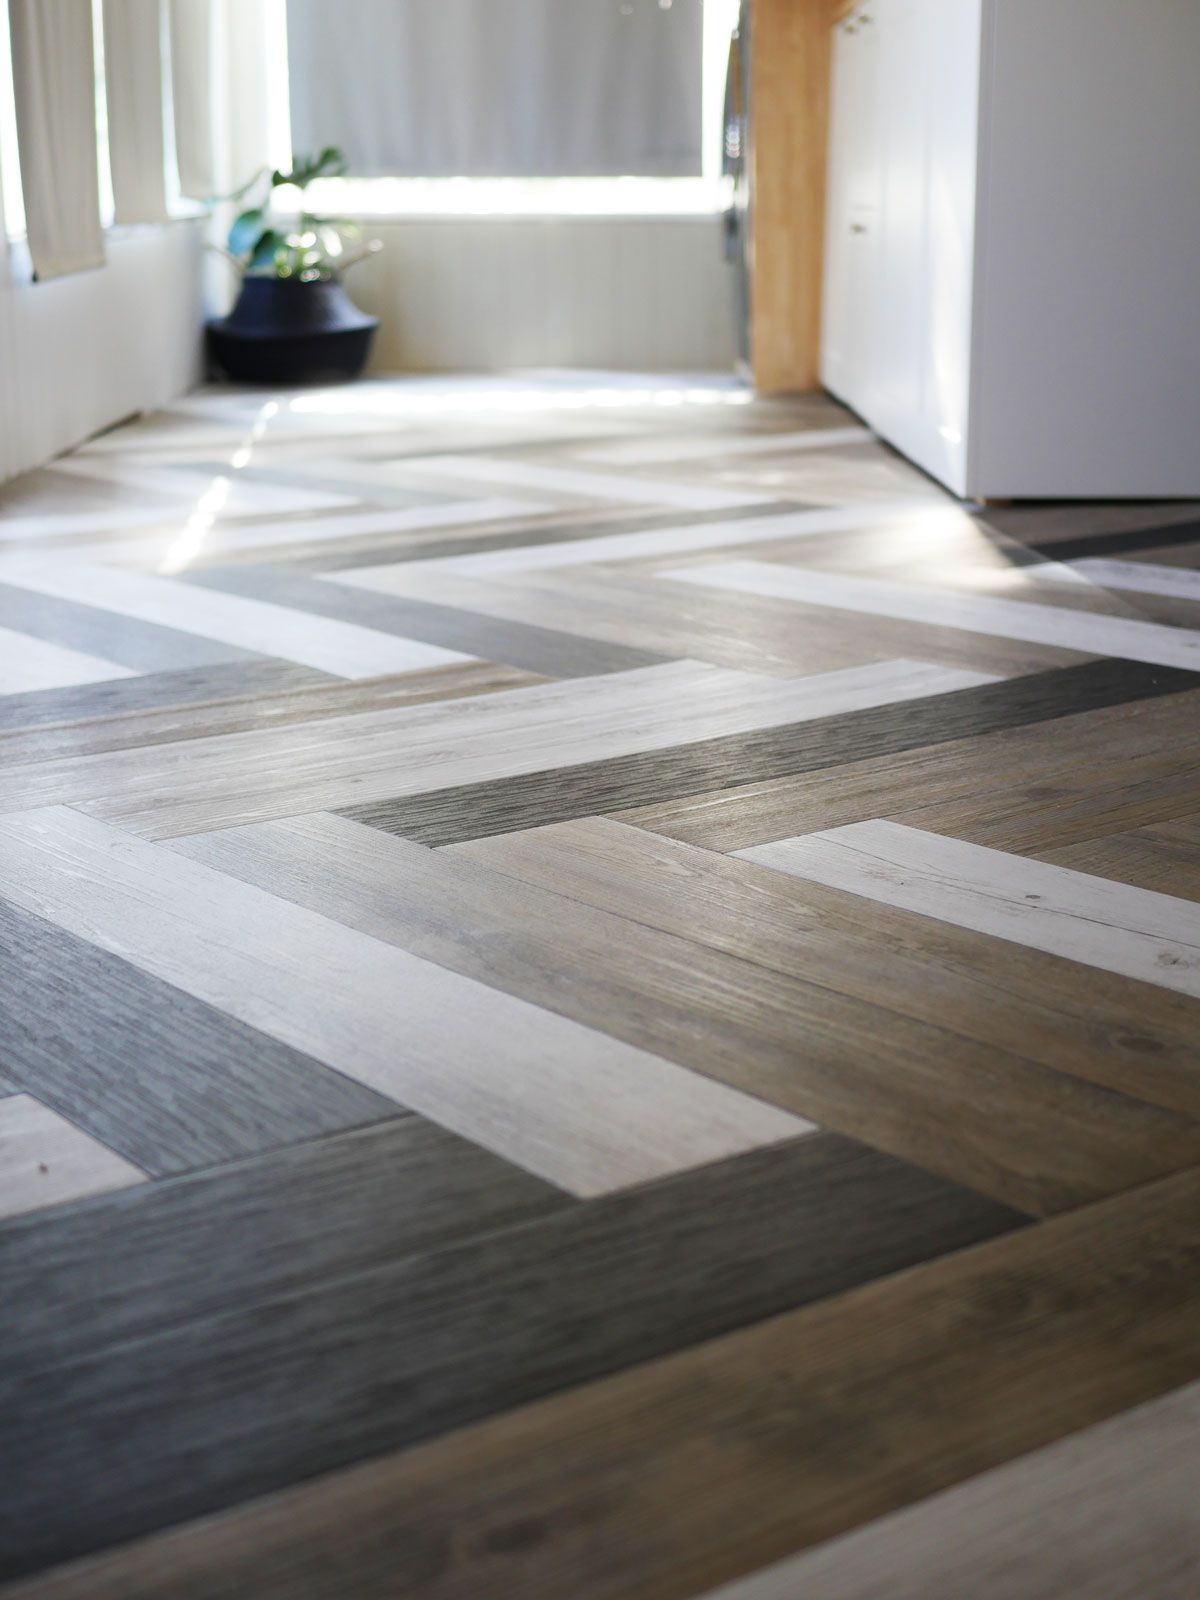 would of one two choices stick pretty new office ideas floors down tile which believe are hello gallery tiles decoration that flooring you these installation floor do vinyl like